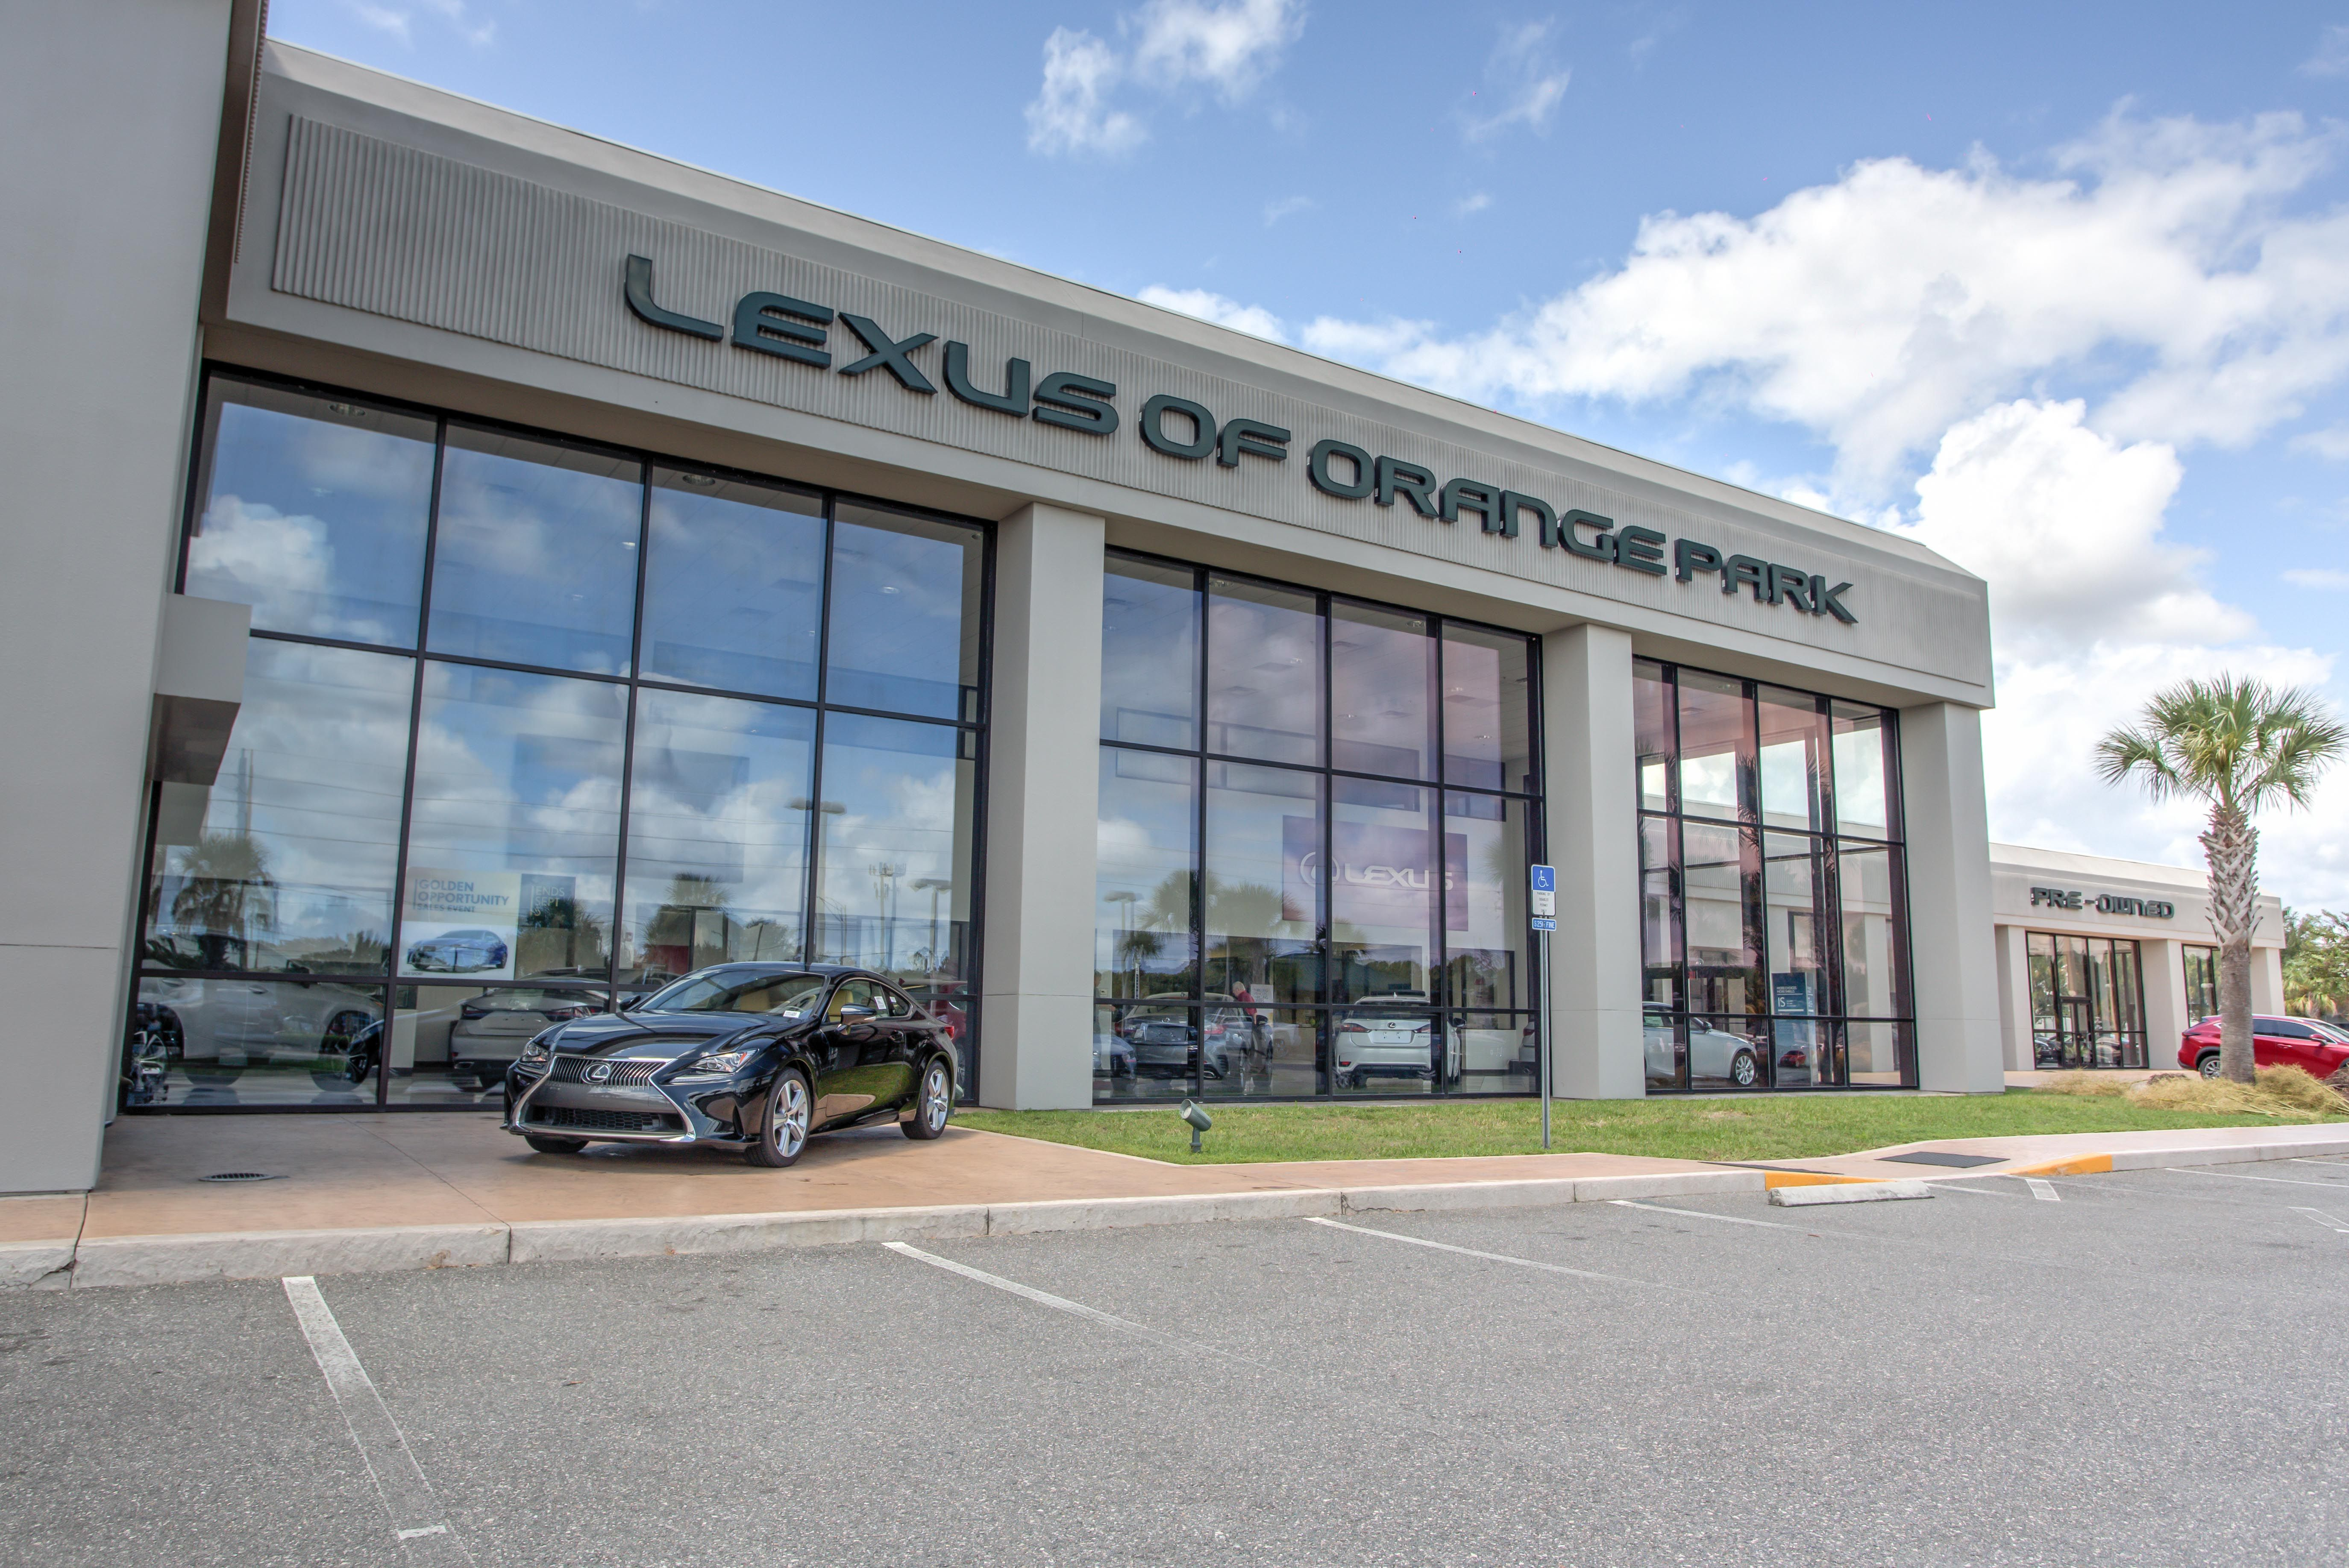 Our Mission Is To Make Every Customer A Customer For Life By Consistently Providing World Class Services Superb Customer Care Com Orange Park Lexus New Lexus